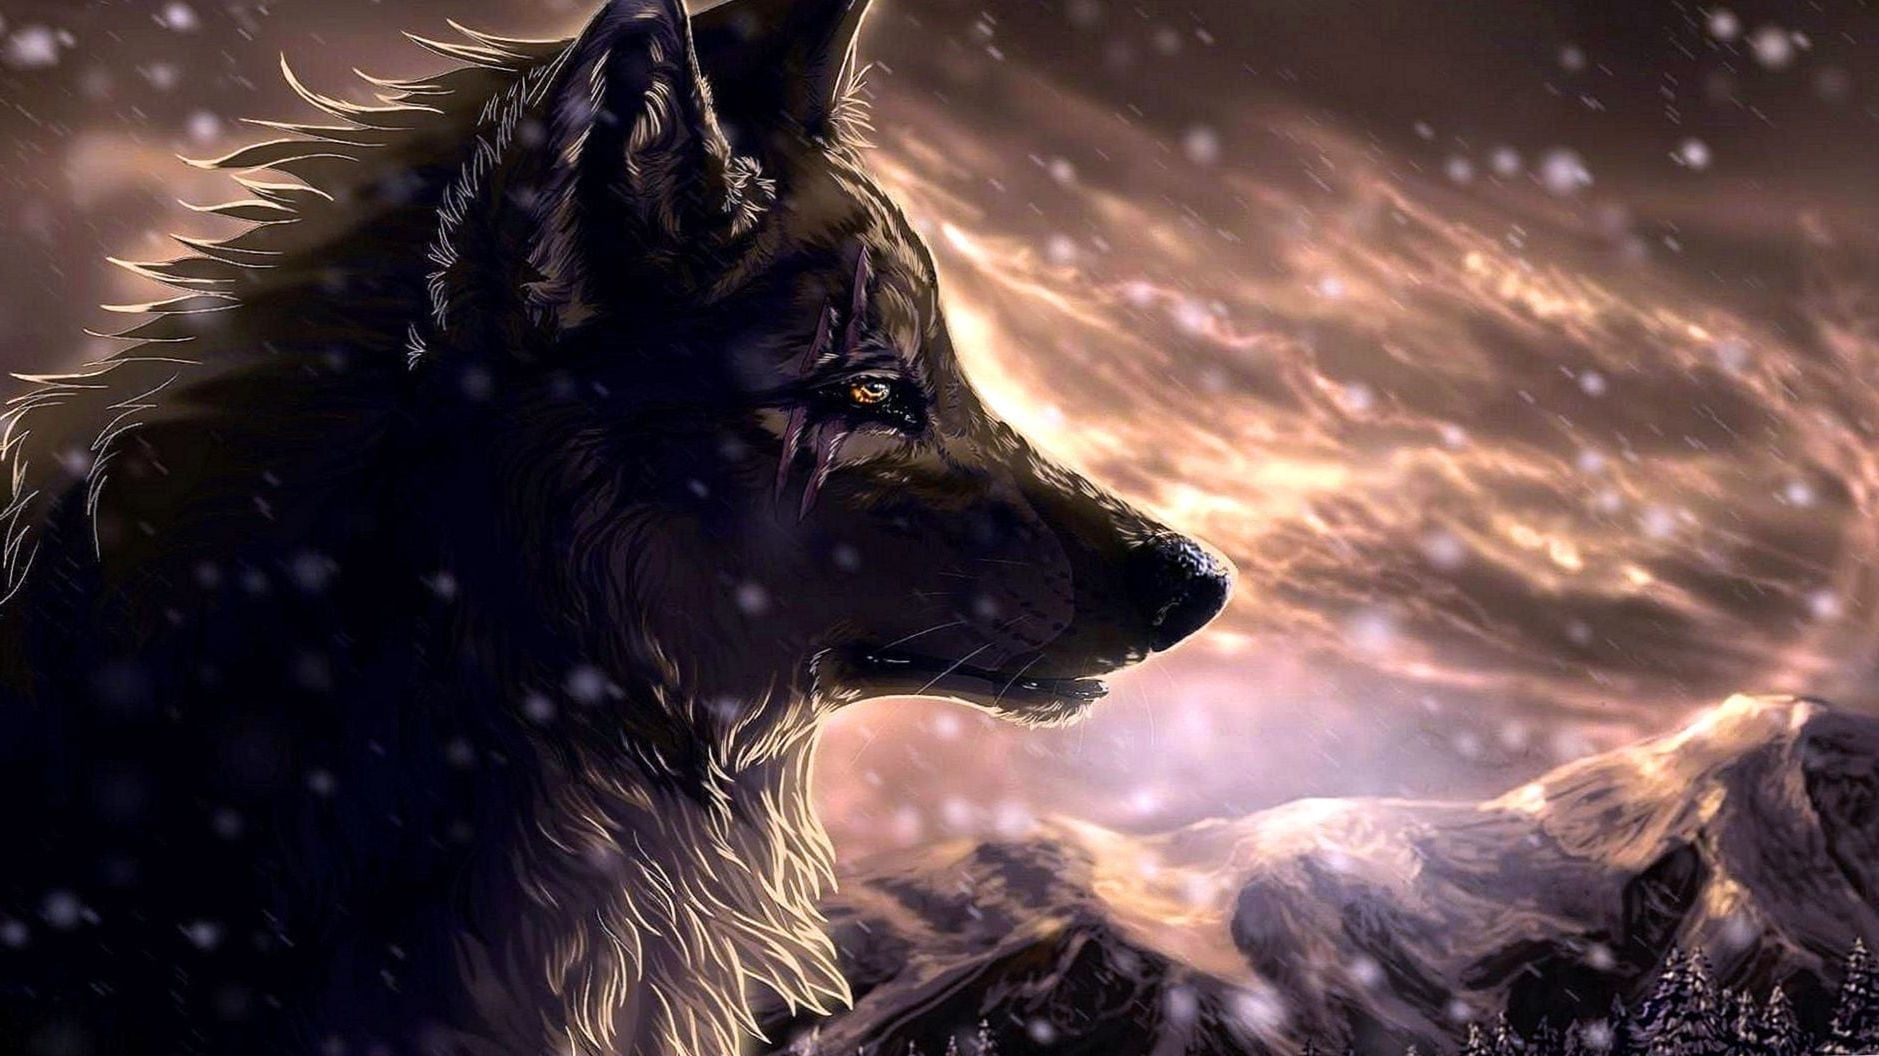 Anime Wolf Wallpapers Full Hd Anime Wolf Wallpapers Full Hd Wolf Wallpaper Wolf Background Iphone Wallpaper Wolf